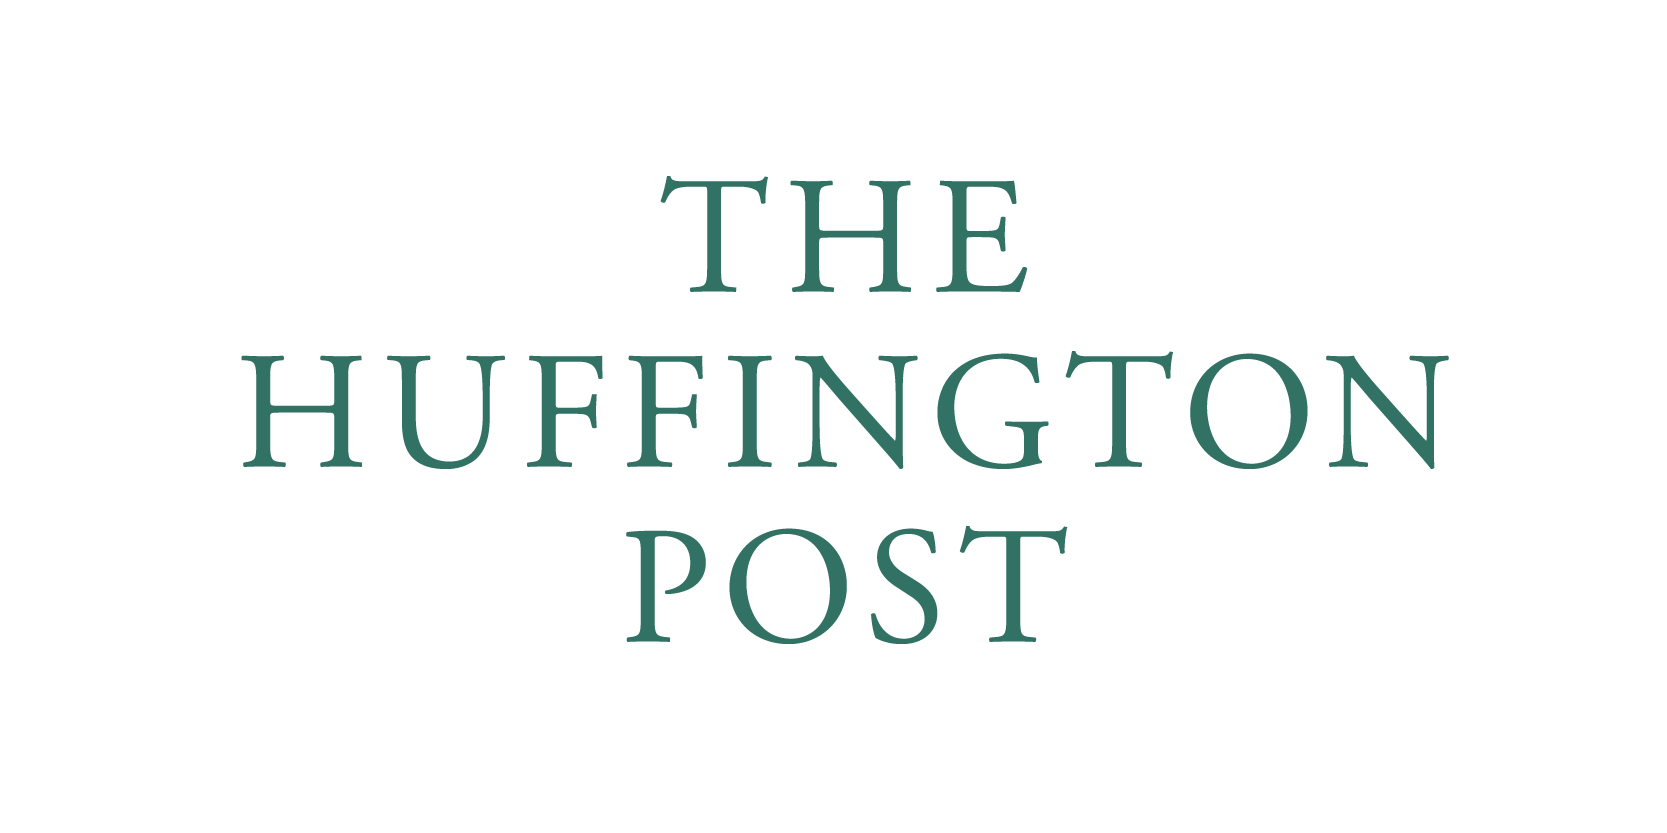 Valley Talks on Huffington Post